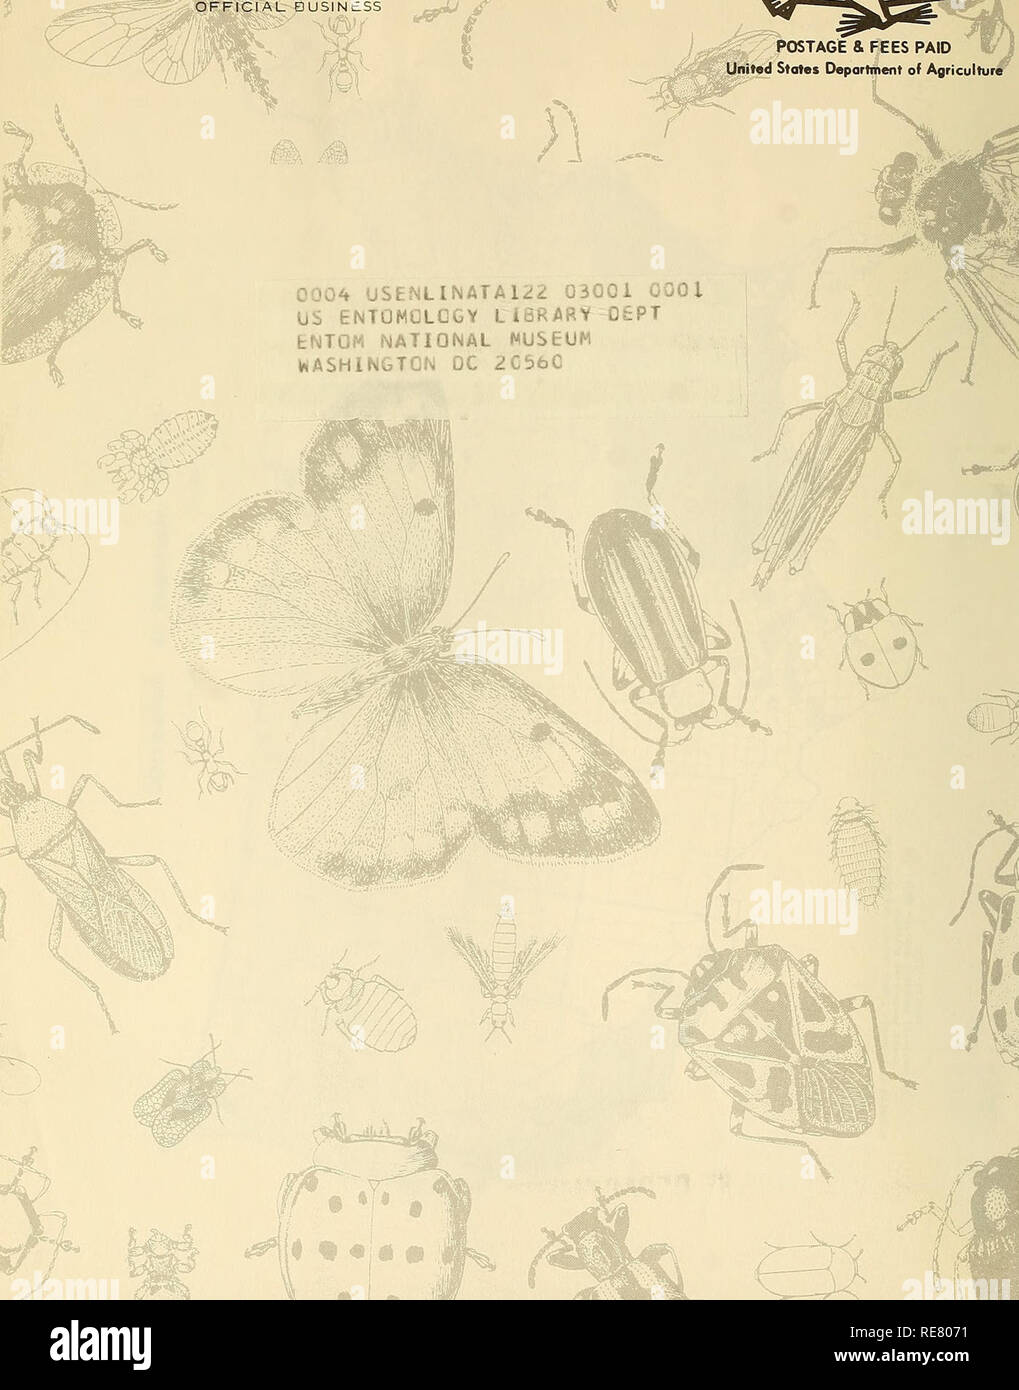 """. Cooperative economic insect report. Beneficial insects; Insect pests. UNITED STATES DEPARTMENT OF AGRICULTURE Hyattsville, Maryland 20782 ^ ,, v £/•>' OFf ICIAL eUSlNtSS. OSTAGE & FEES PAID Unitad States Department of Agriculture ;i L'Jv""""t 'j:>r :sL liH» M i^ii jjiGOi 0001 US ENTONOLGGY LiSRARY 0£PT ENTOM NATIONAL MUSEUM ViASHlN&TGN DC 2C56C. Please note that these images are extracted from scanned page images that may have been digitally enhanced for readability - coloration and appearance of these illustrations may not perfectly resemble the original work.. United State - Stock Image"""